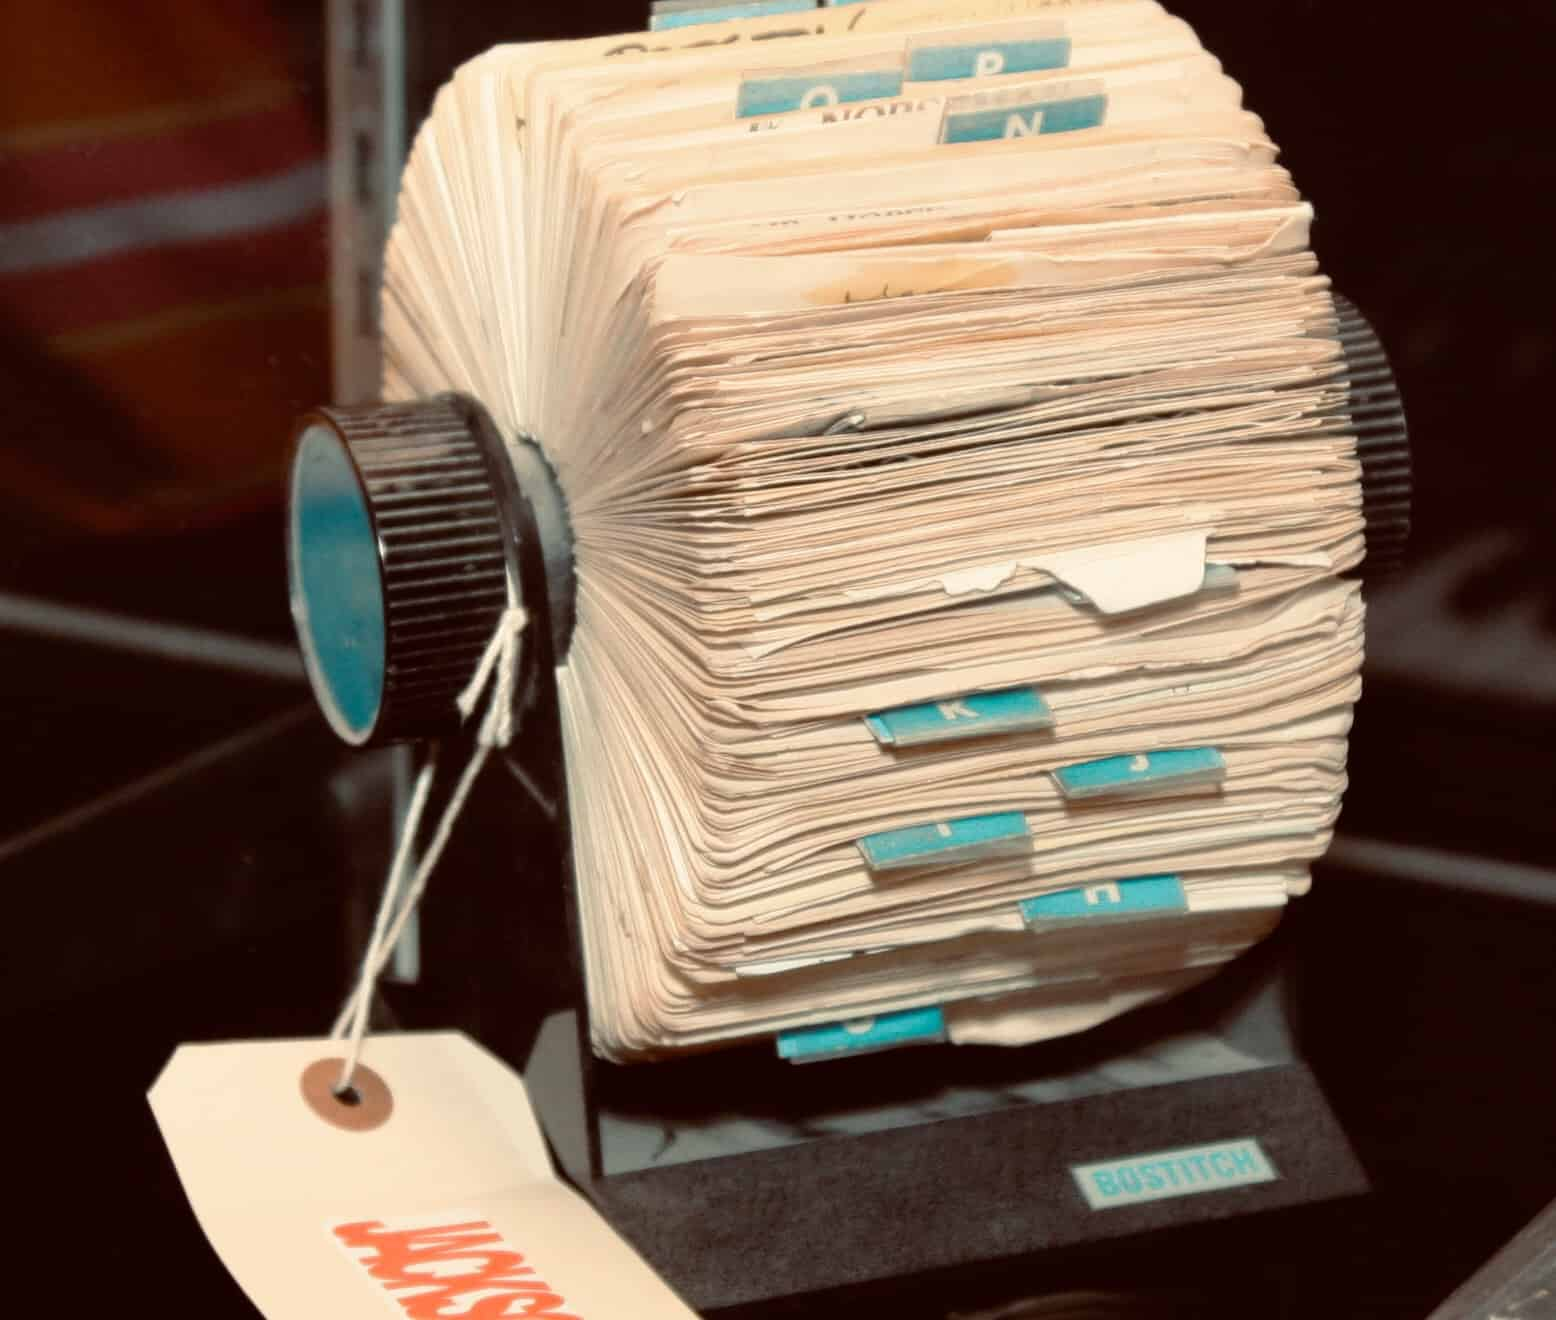 Does your Safari tab view looked like an overstuffed Rolodex? We can totally help.